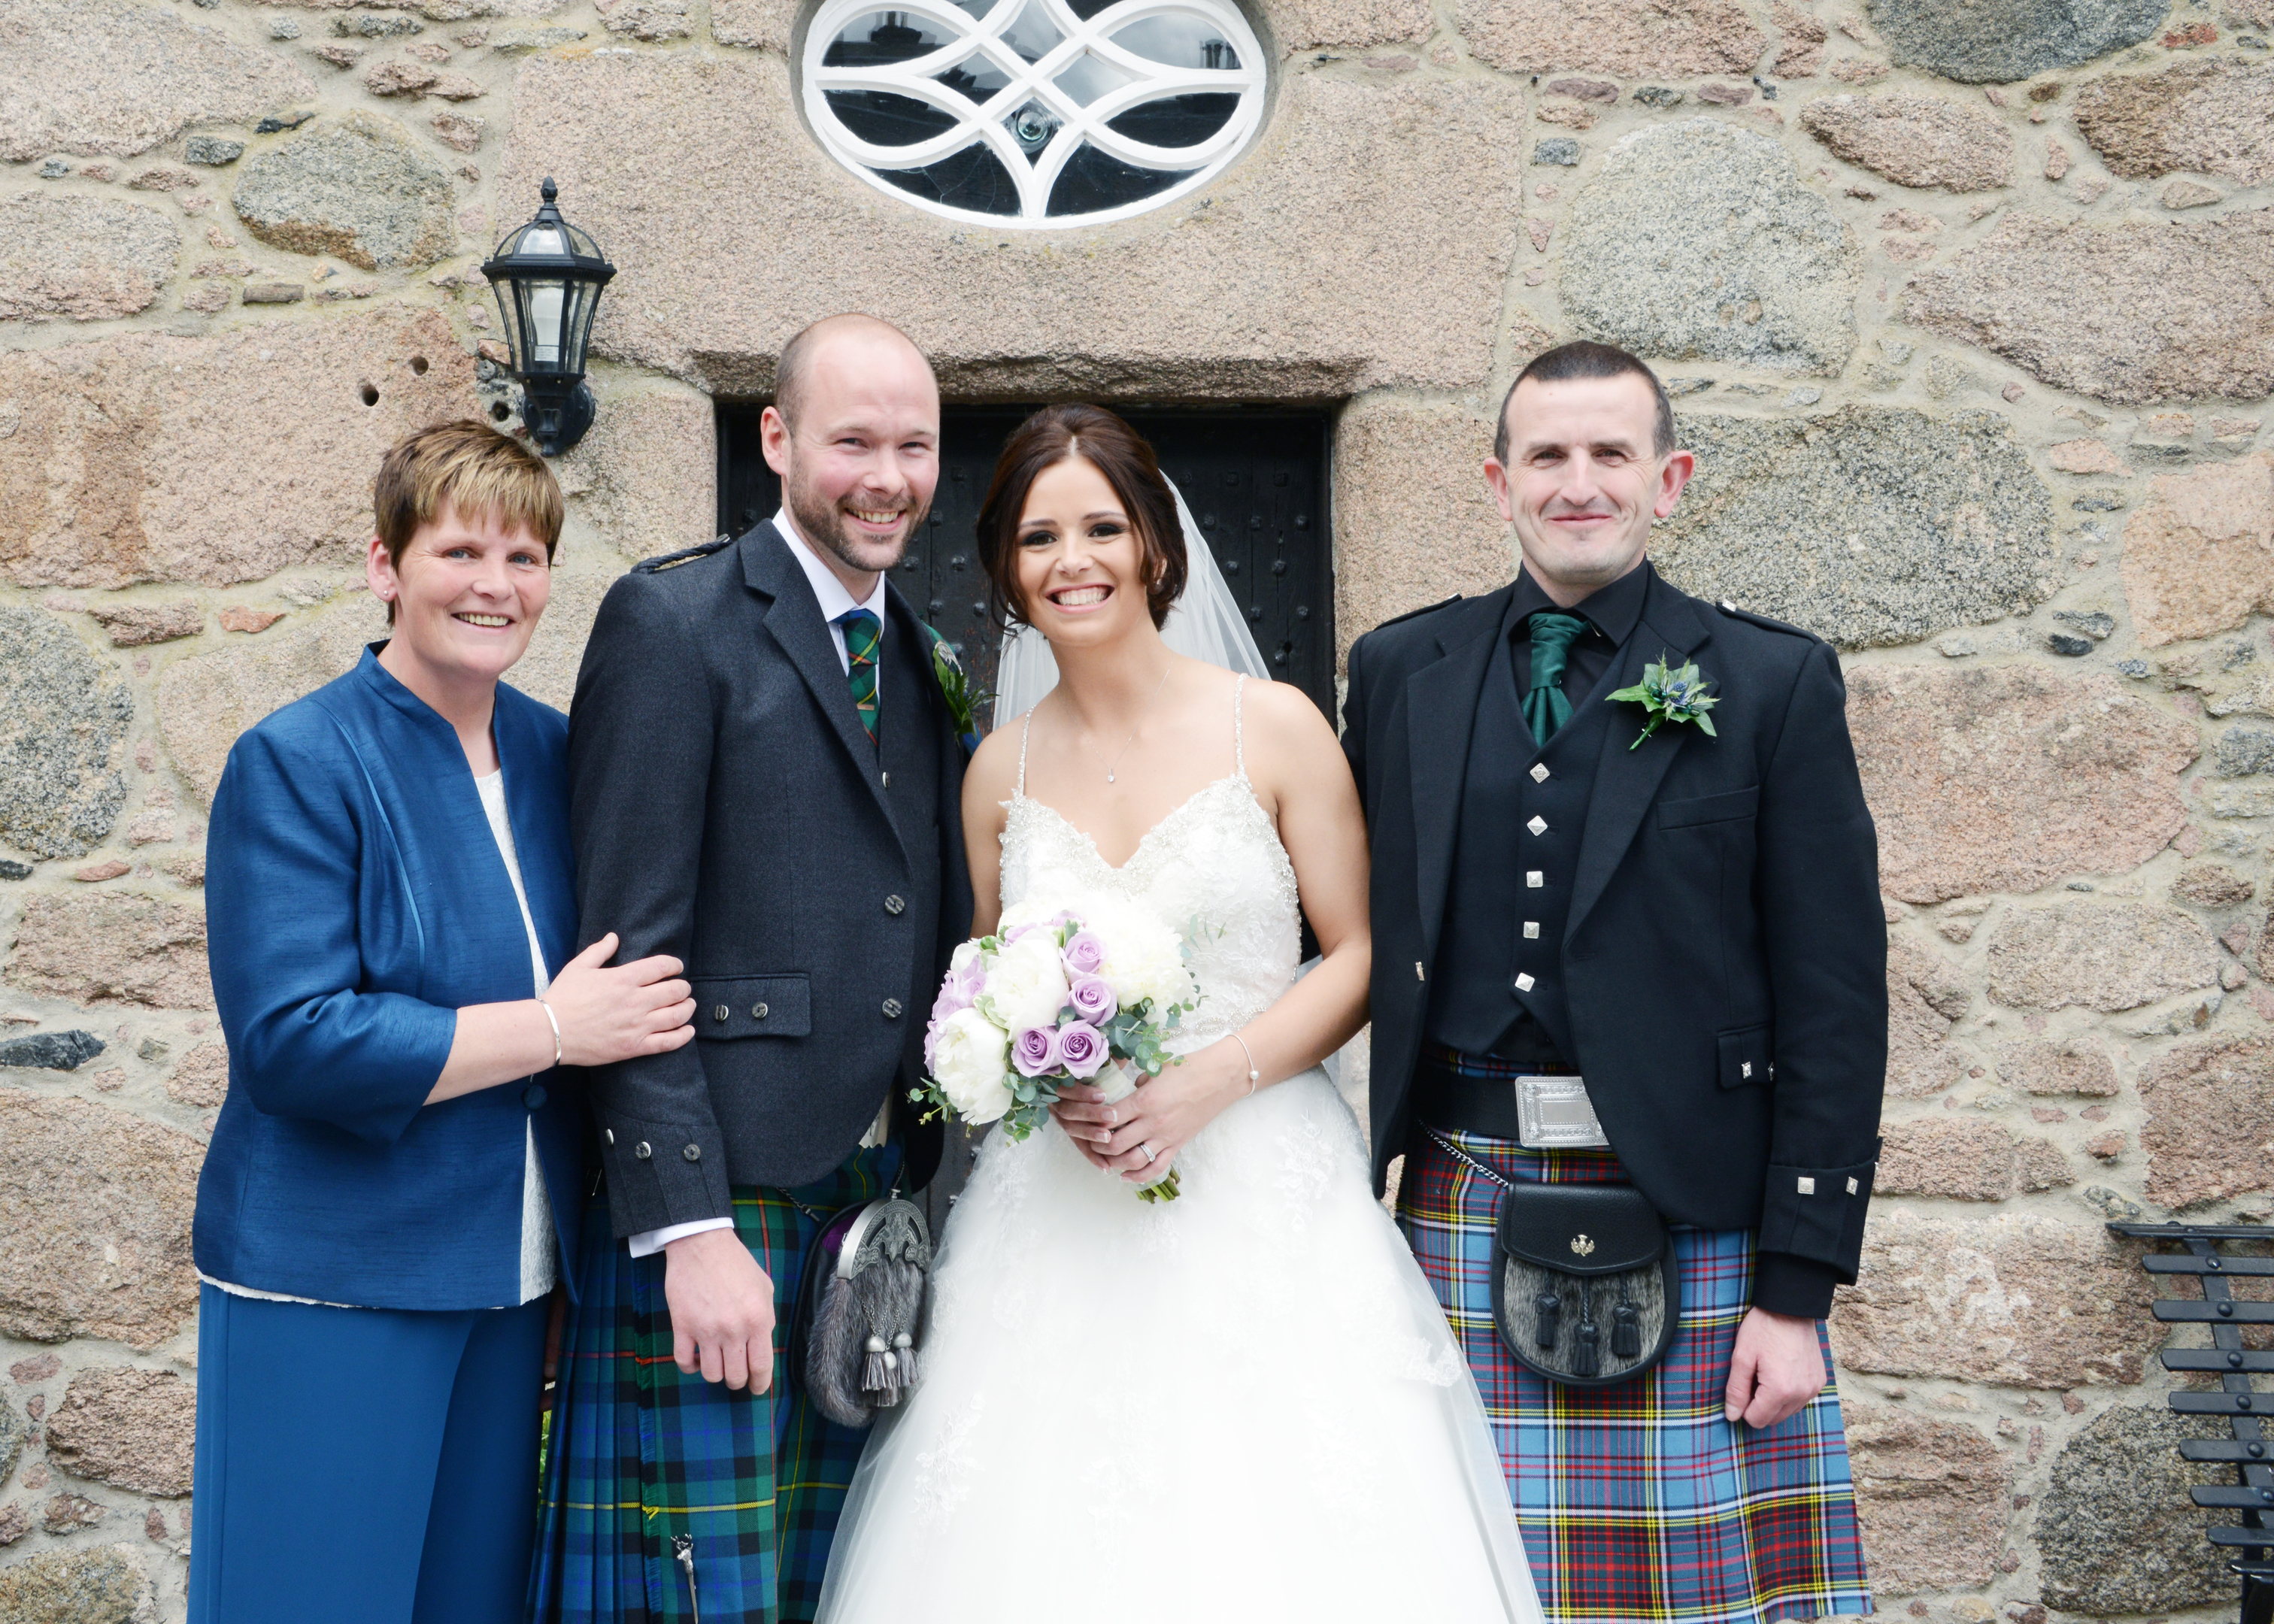 Wendy Anderson (pictured far left) at her daughter's wedding in 2016